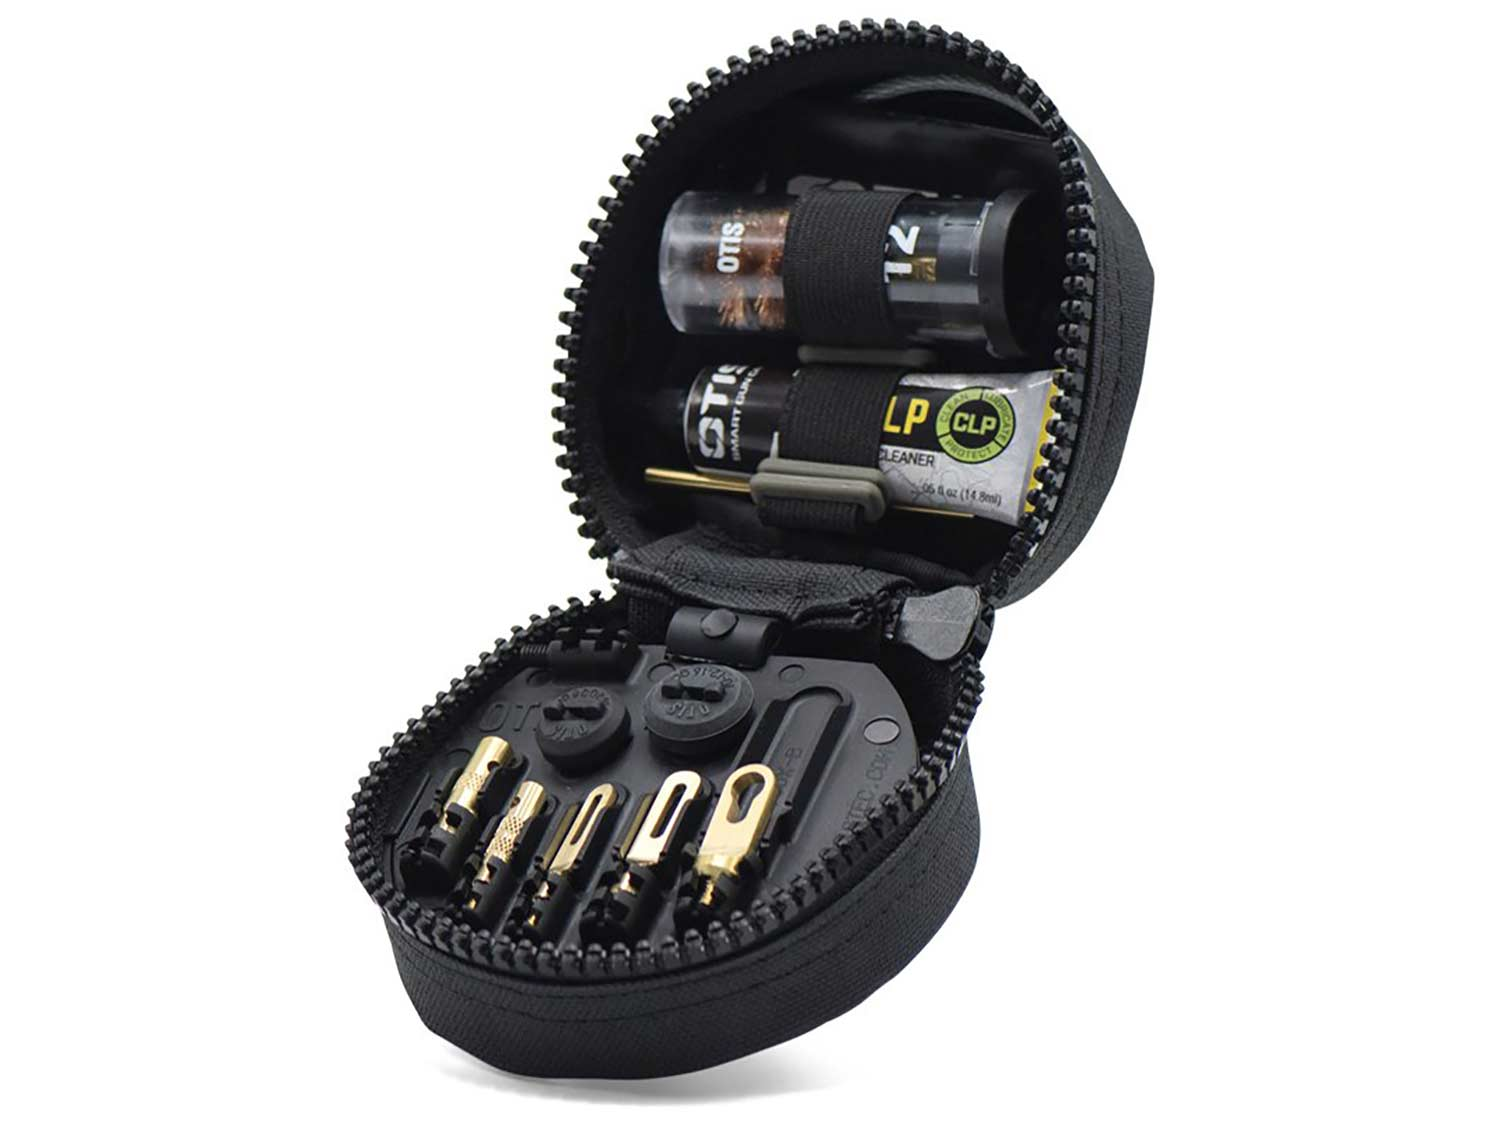 otis tactical cleaning system rifle cleaning kit